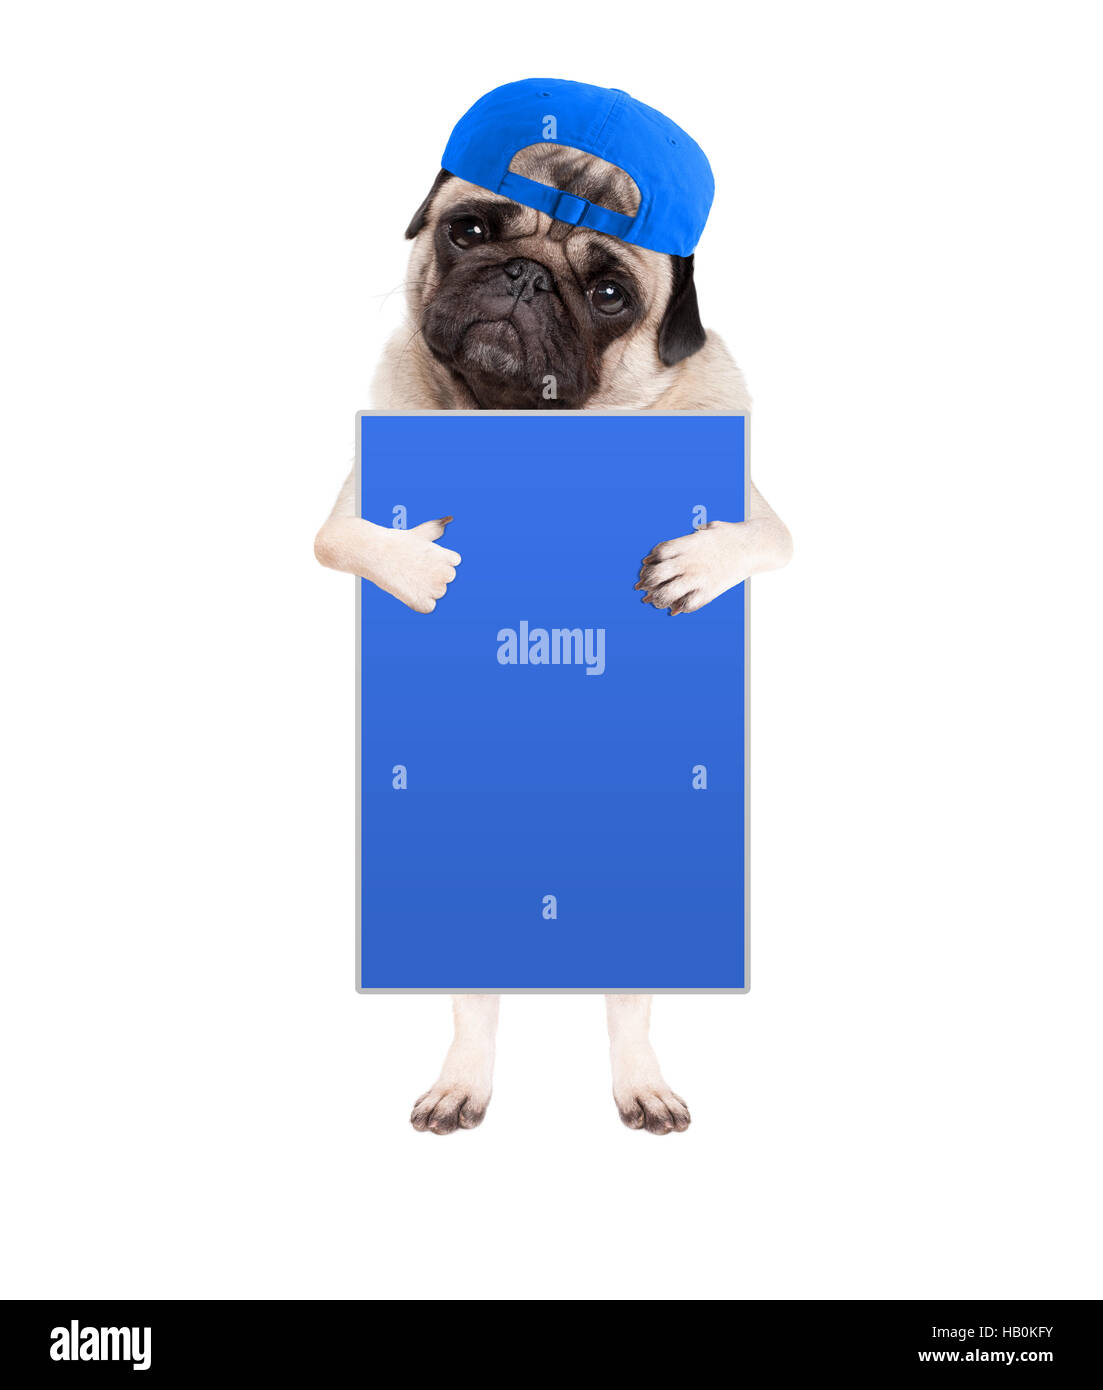 cute pug puppy dog with cap, standing up holding blank blue sign and giving a like with thumb, isolated on white Stock Photo